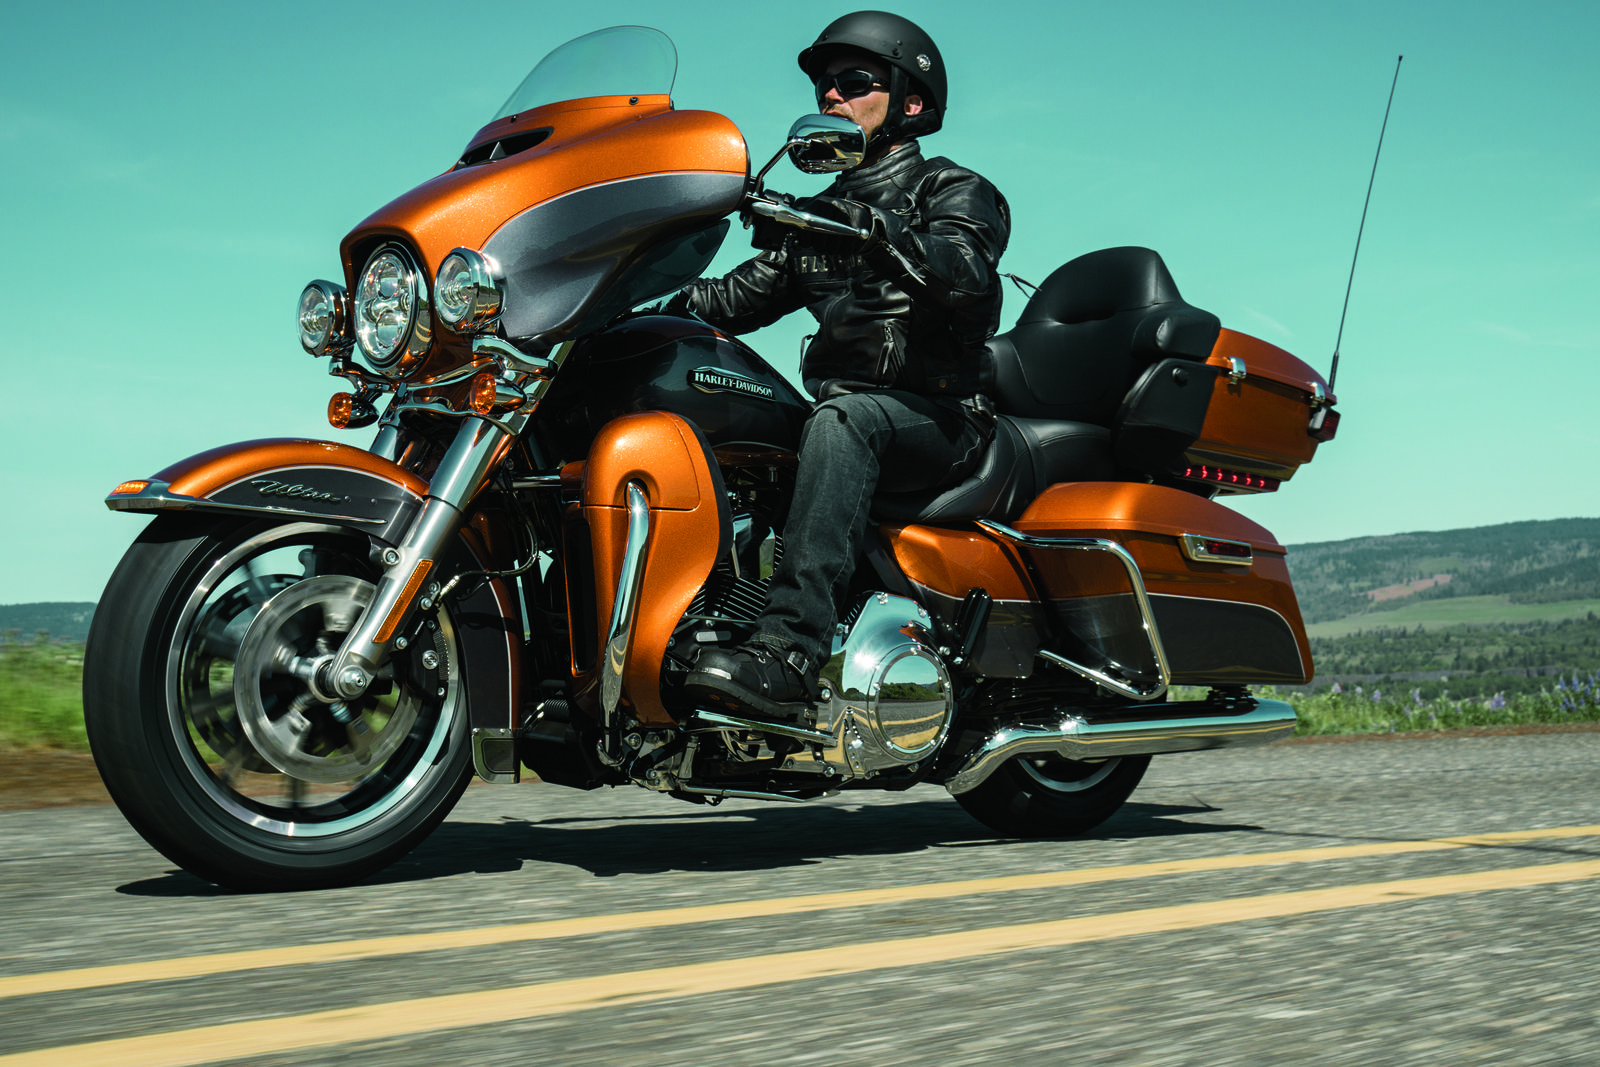 Finally a touring motorcycle for shorties 2015 ultra classic low and limited low